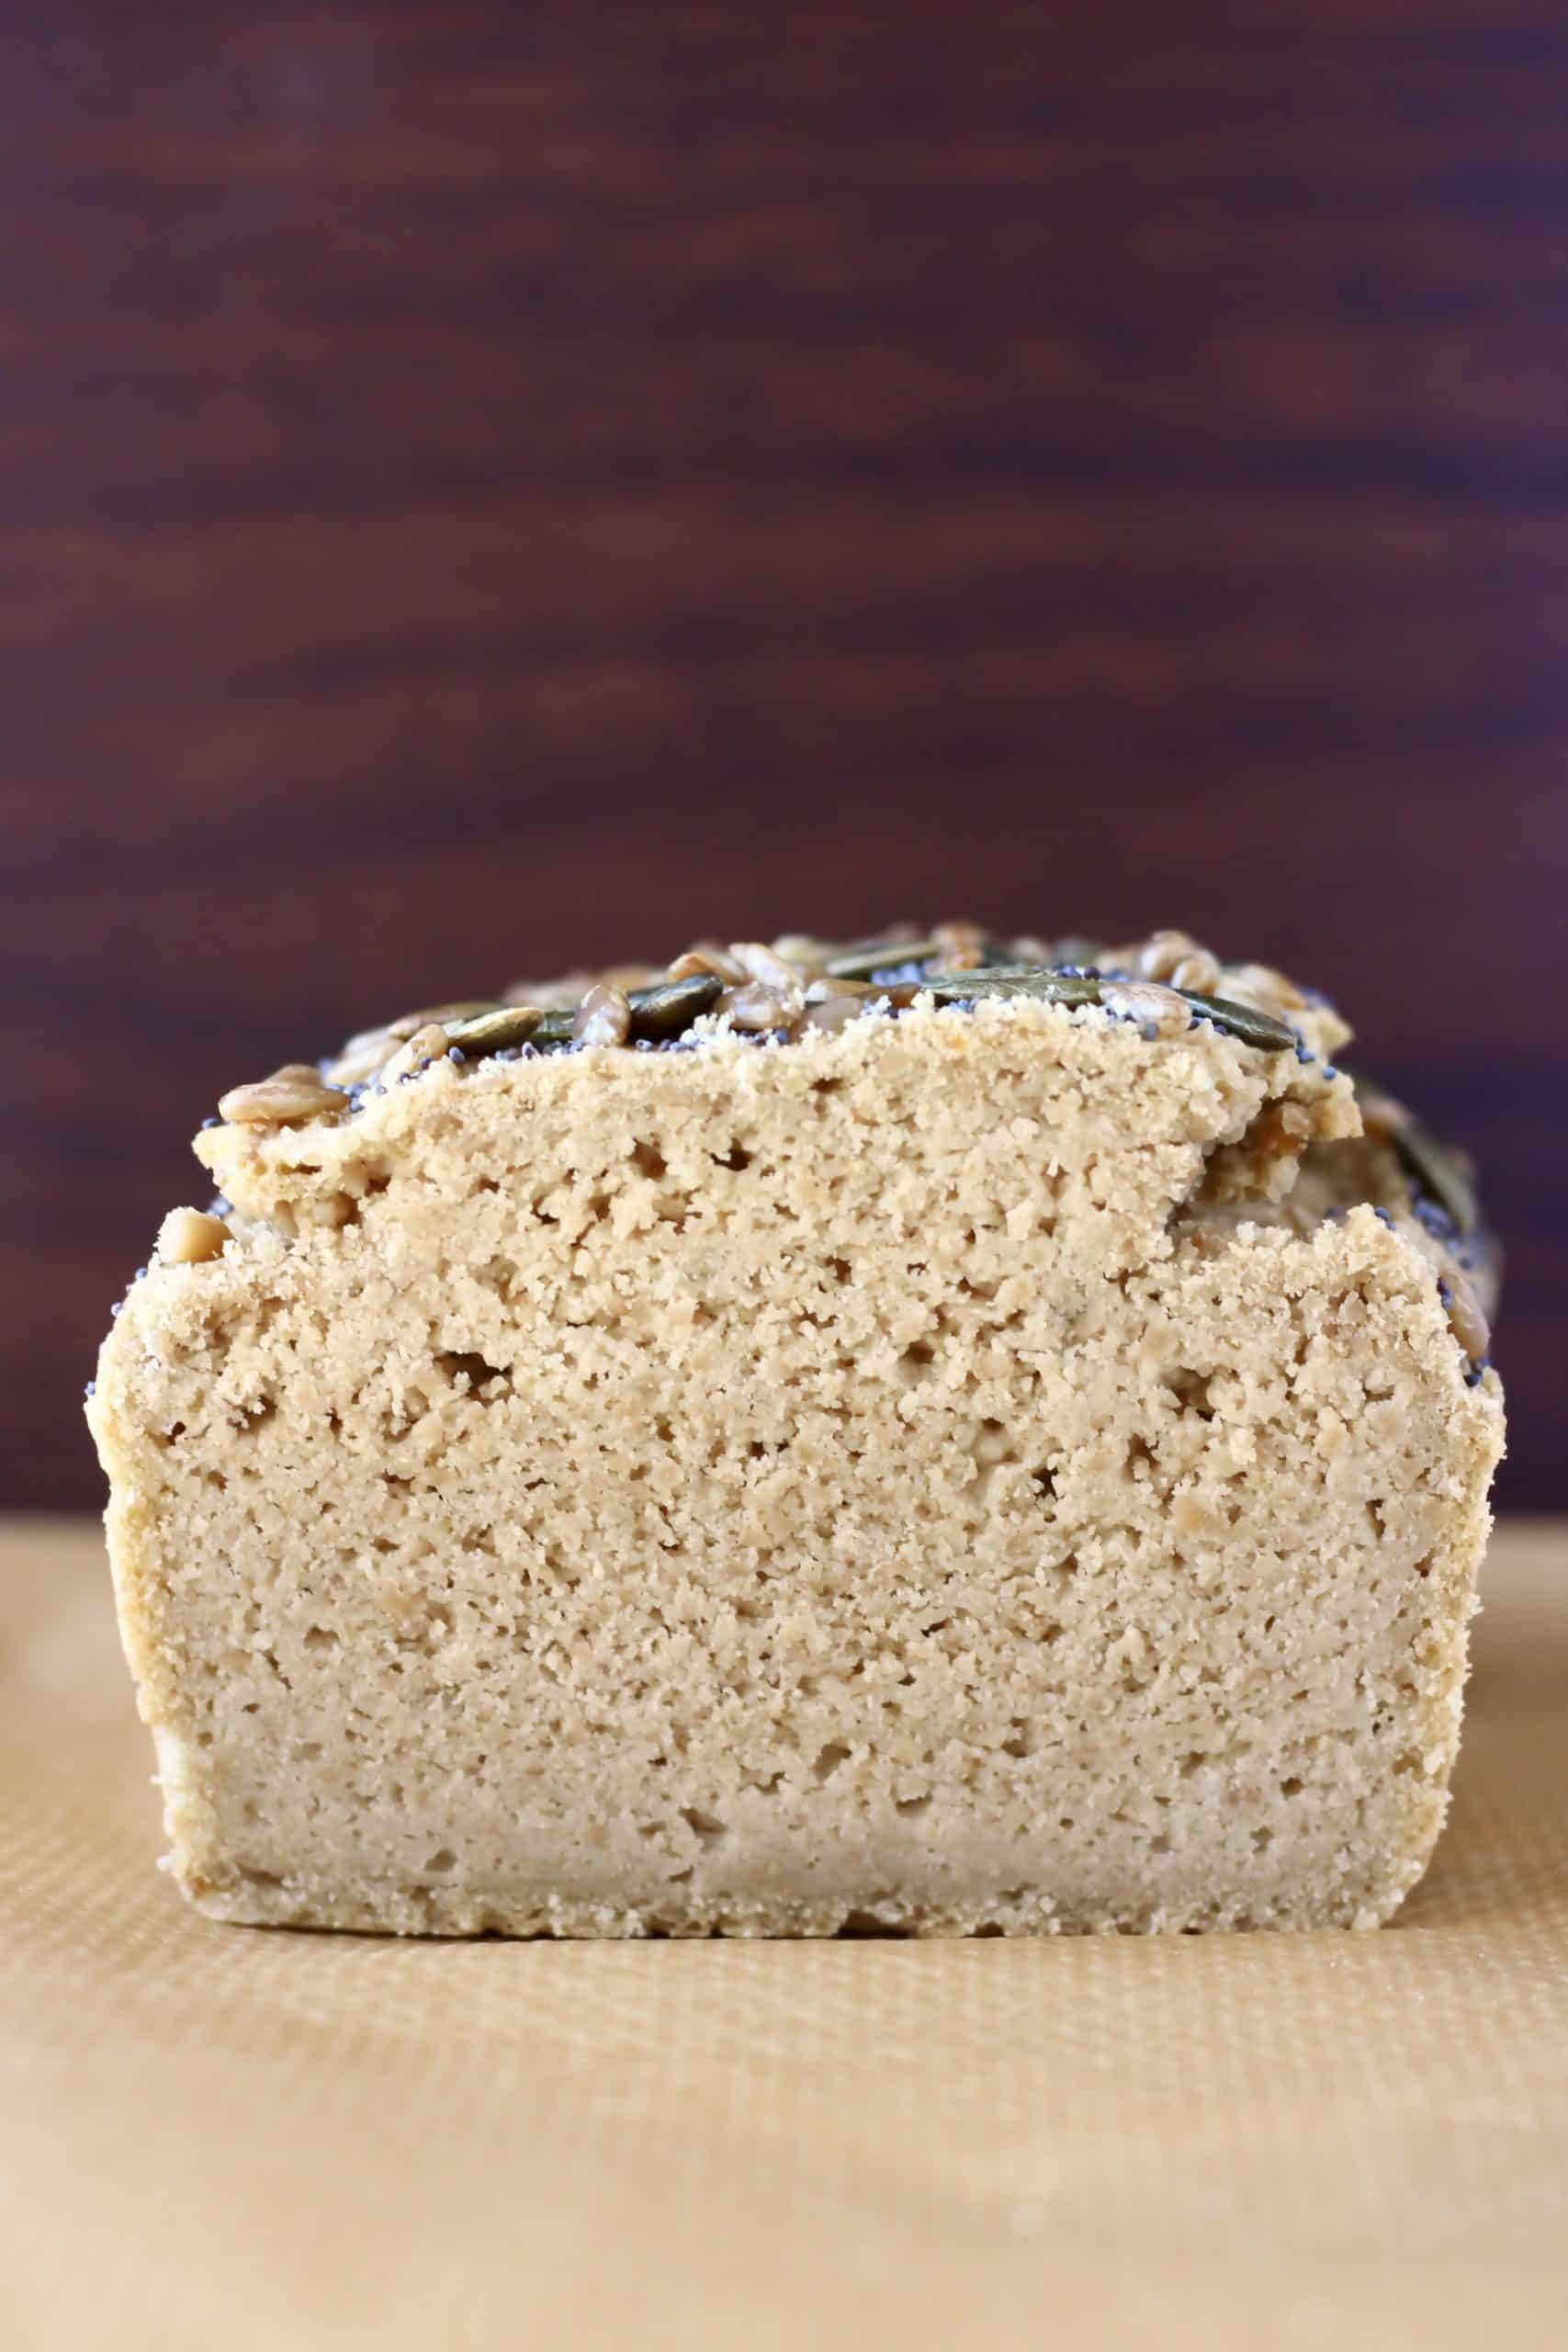 A sliced loaf of sunflower seed bread